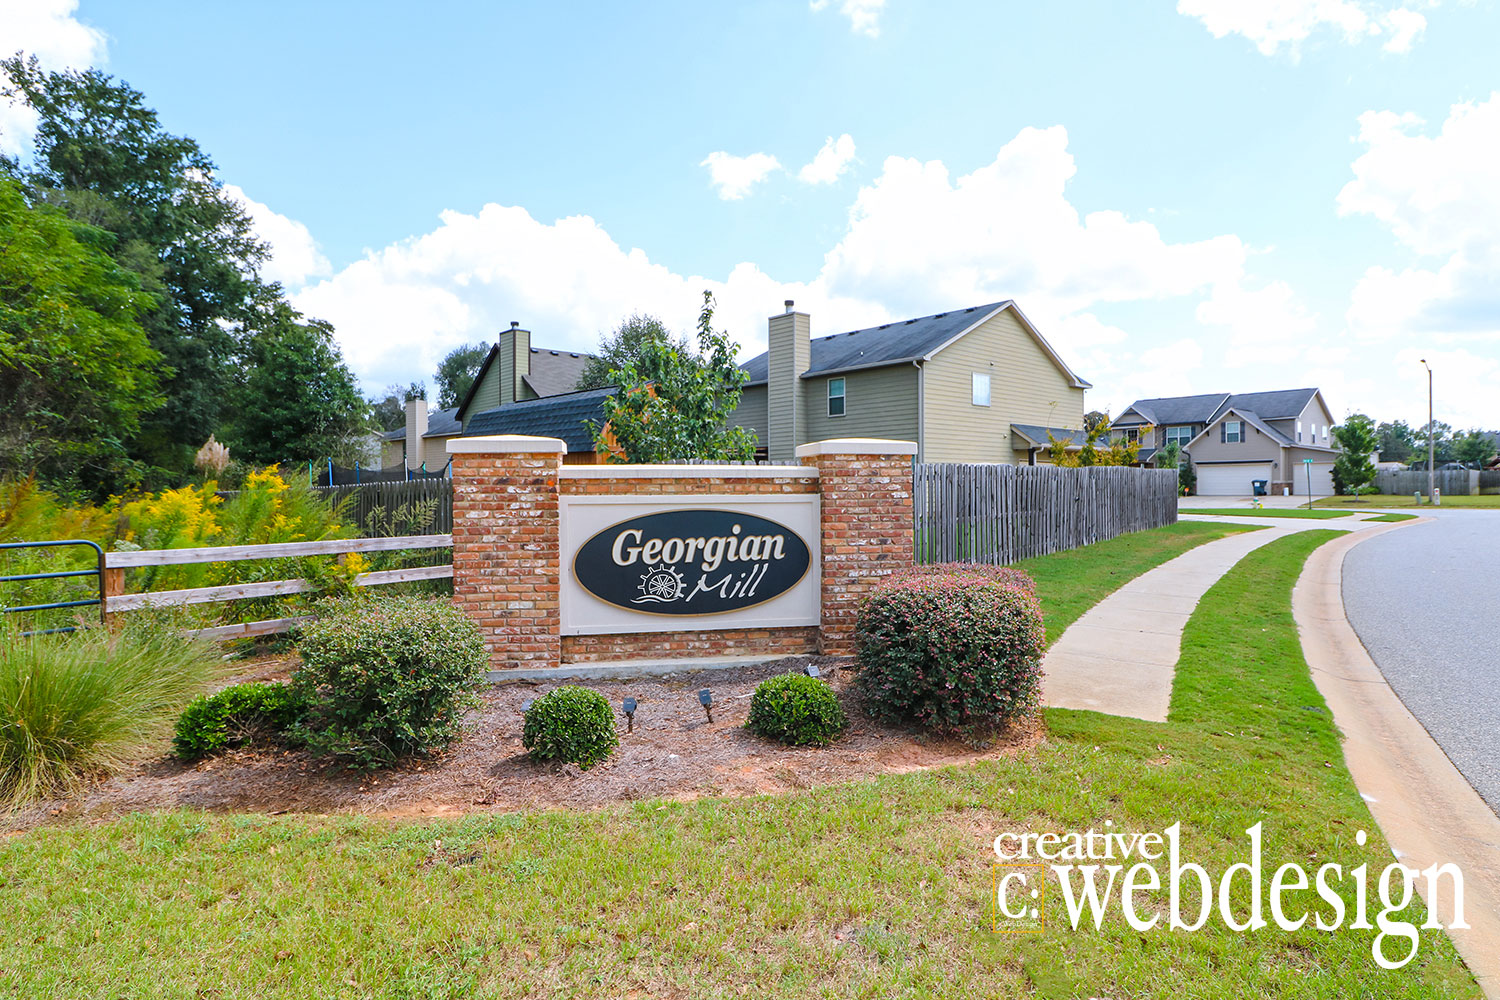 Georgian Mill Subdivision homes for sale in Kathleen GA 31047